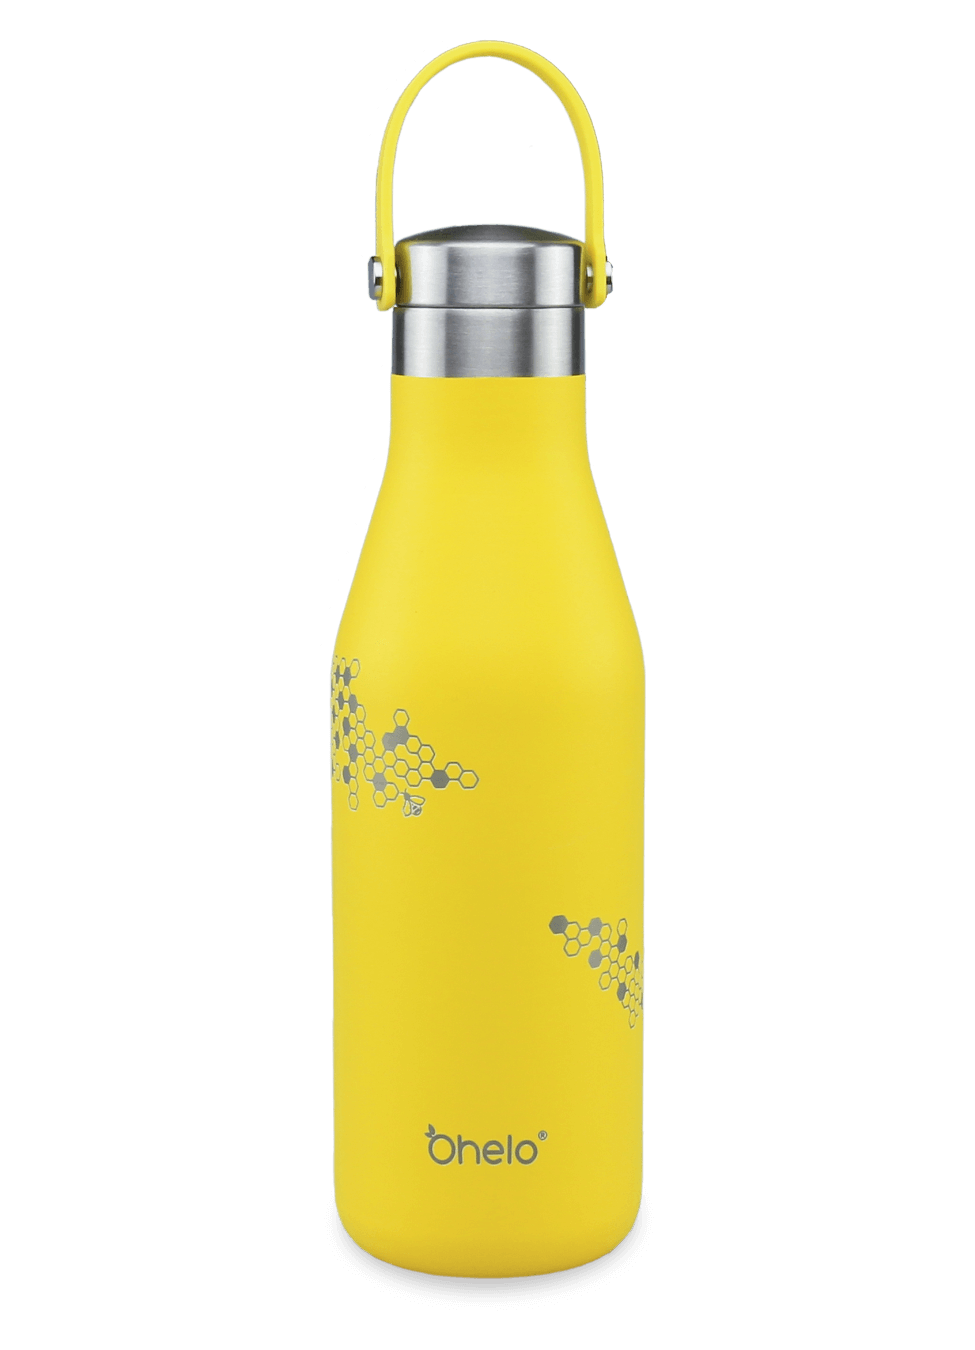 stainless steel reusable bottle yellow with laser etched honeycomb and bee